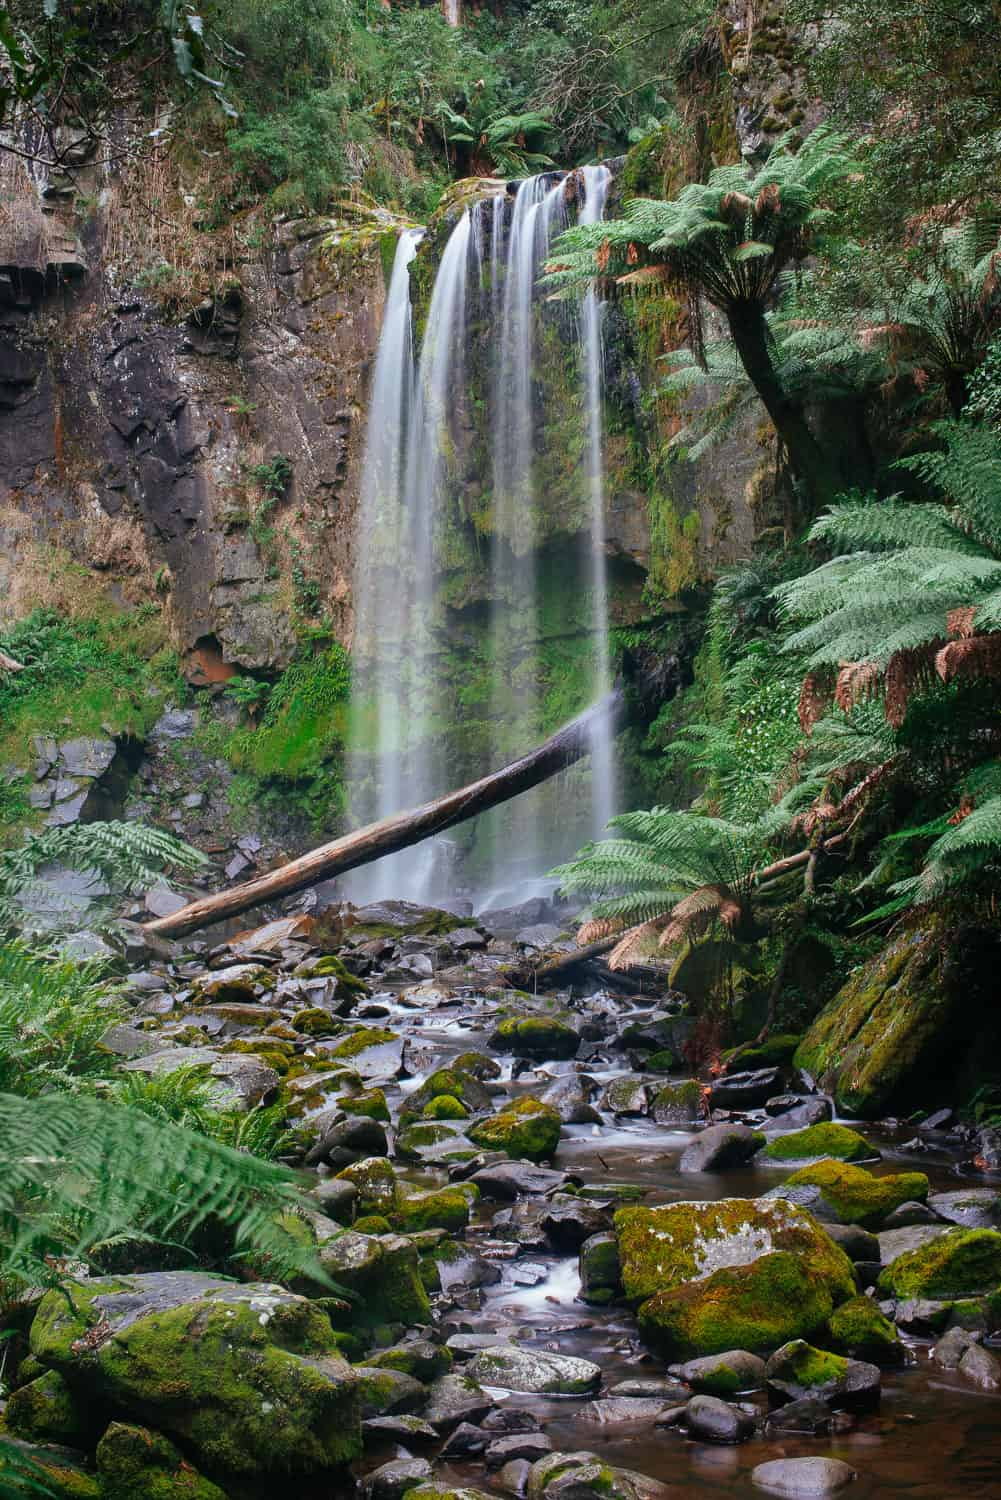 Houpetoun Falls in the Otways